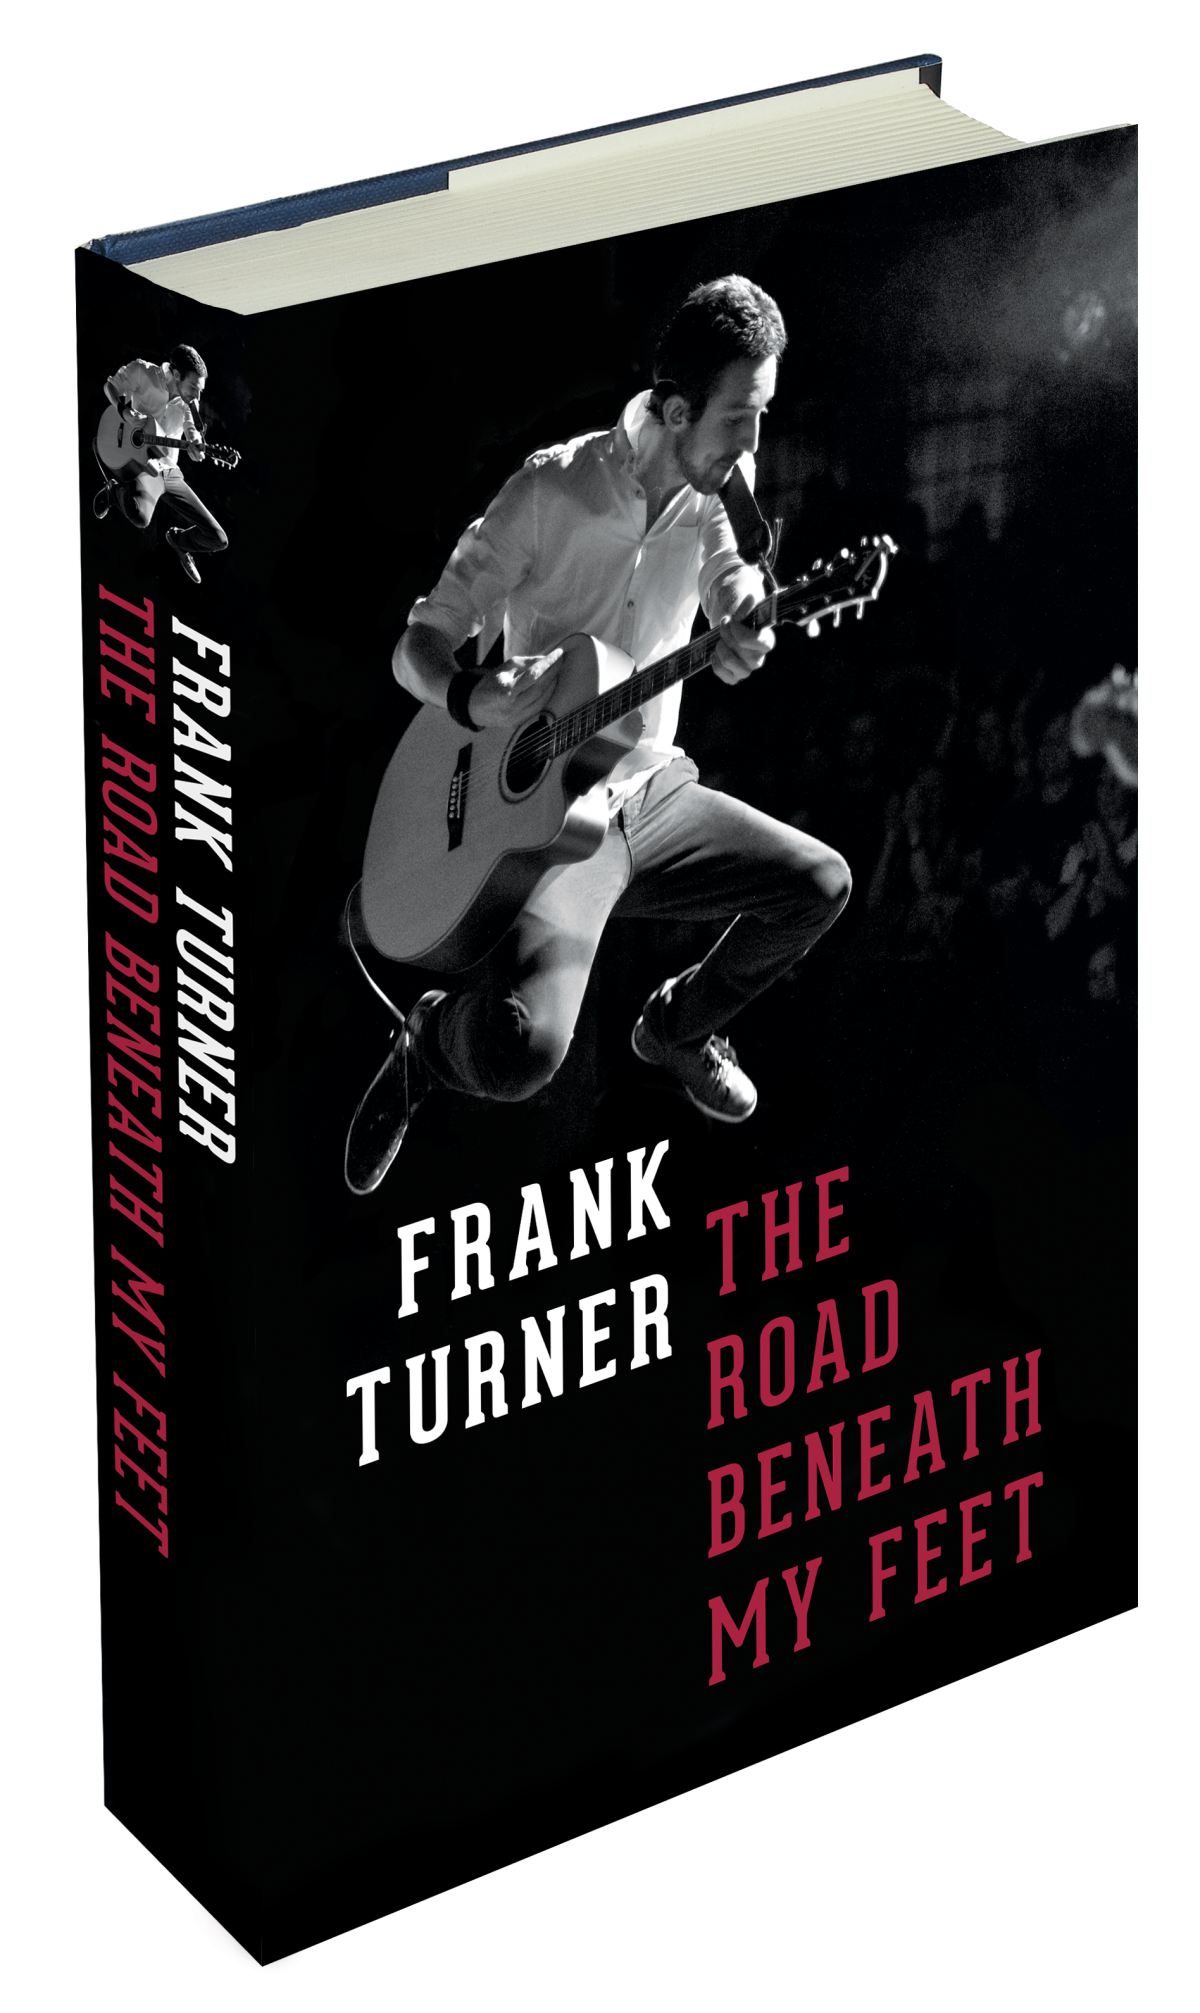 The Road Beneath My Feet by Frank Turner (Book)